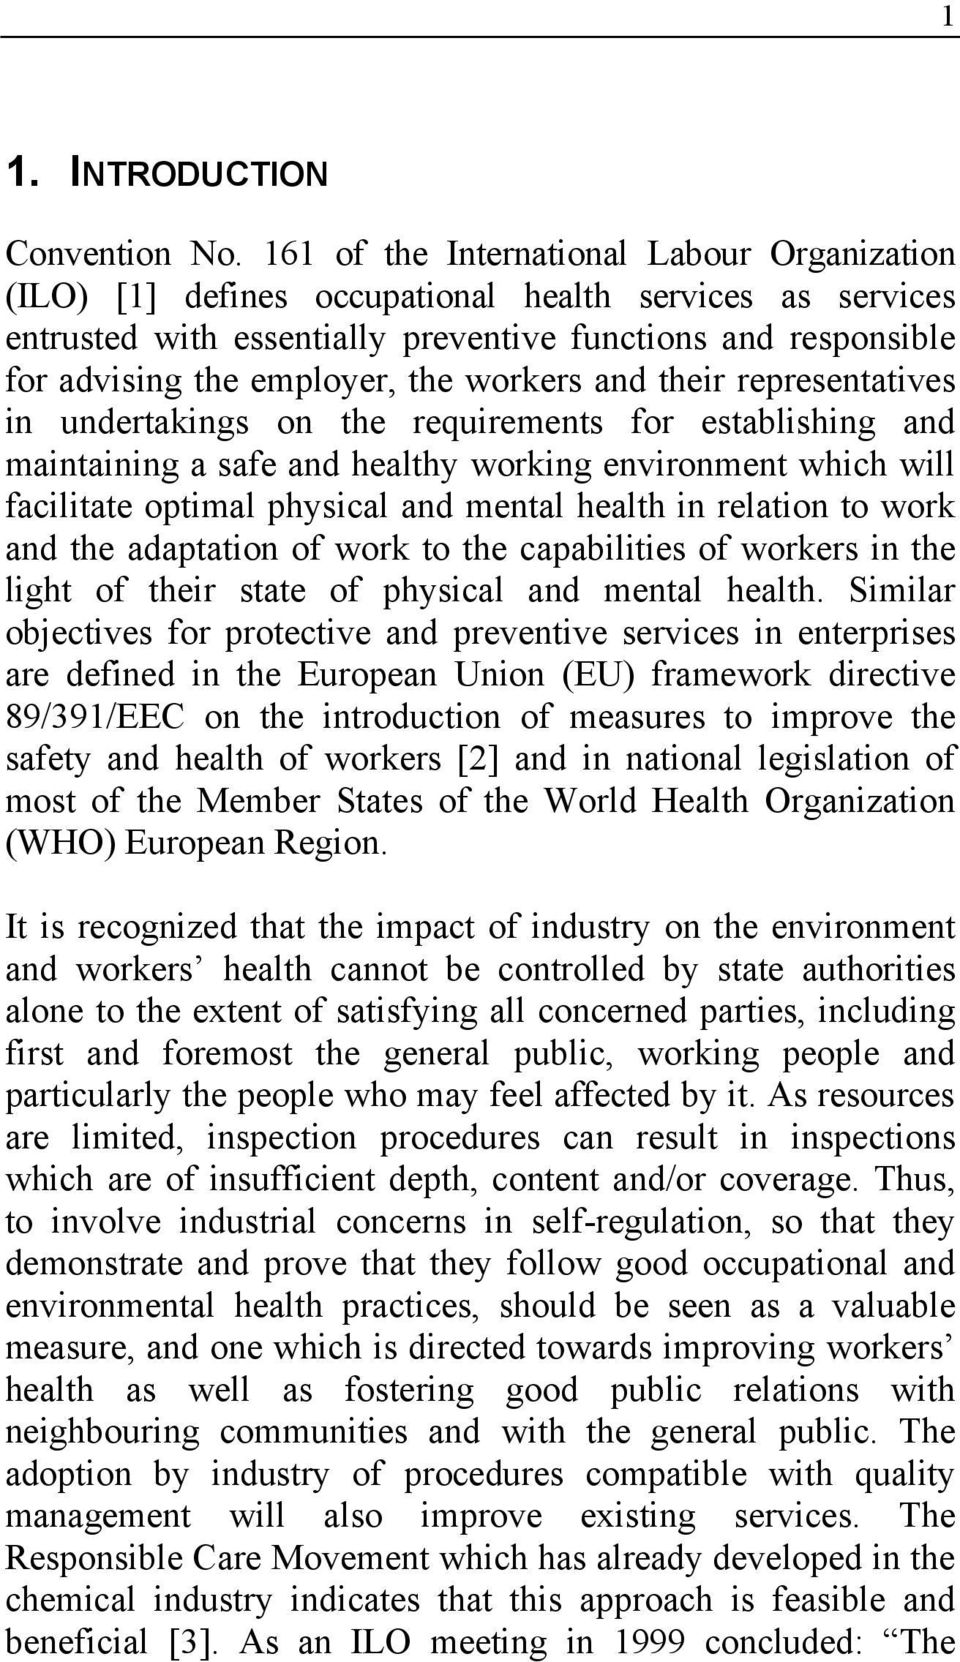 workers and their representatives in undertakings on the requirements for establishing and maintaining a safe and healthy working environment which will facilitate optimal physical and mental health